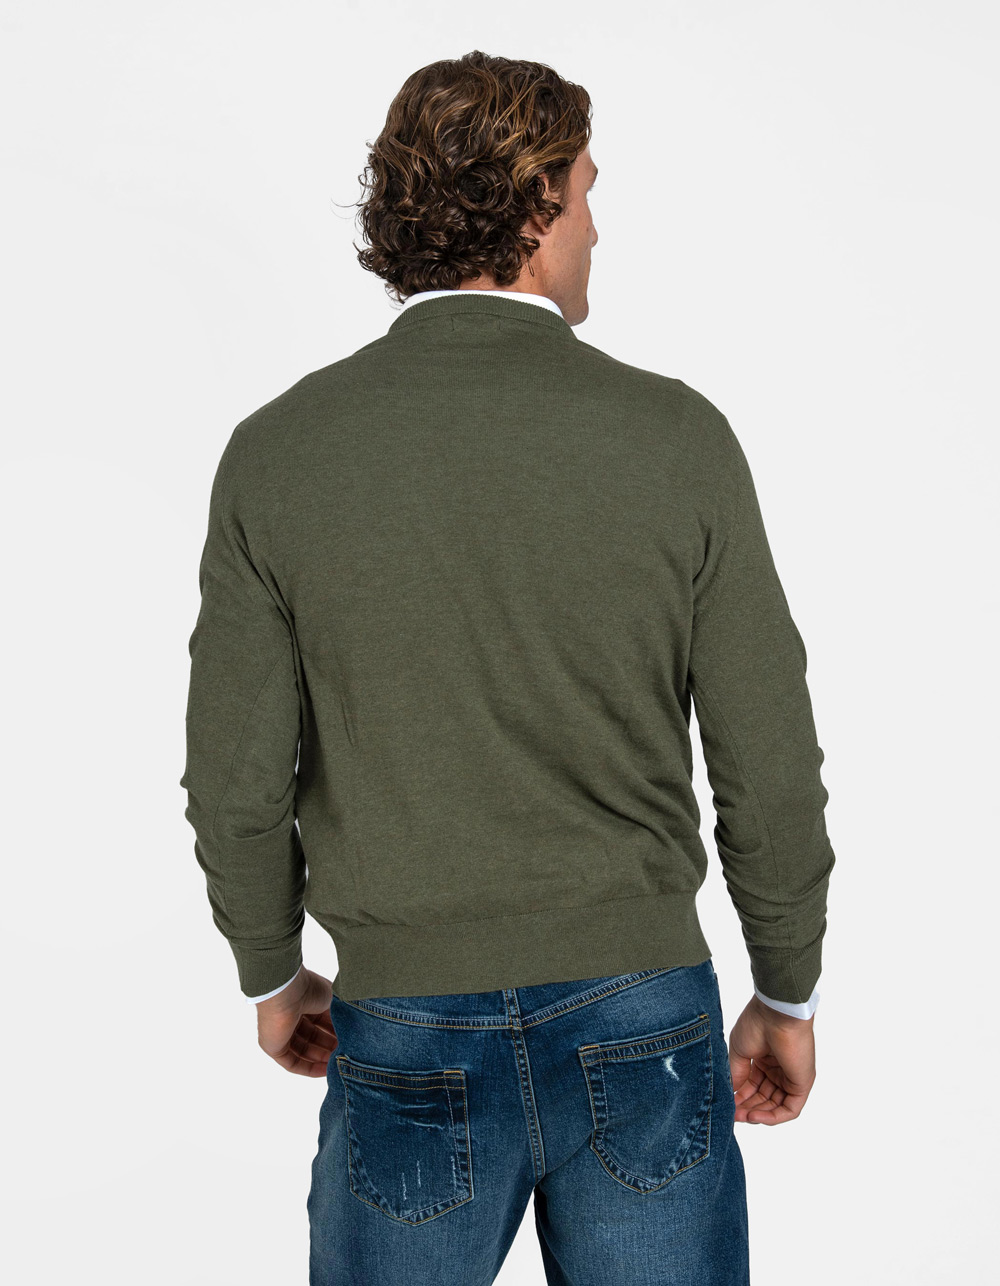 Green v-neck sweater - Backside